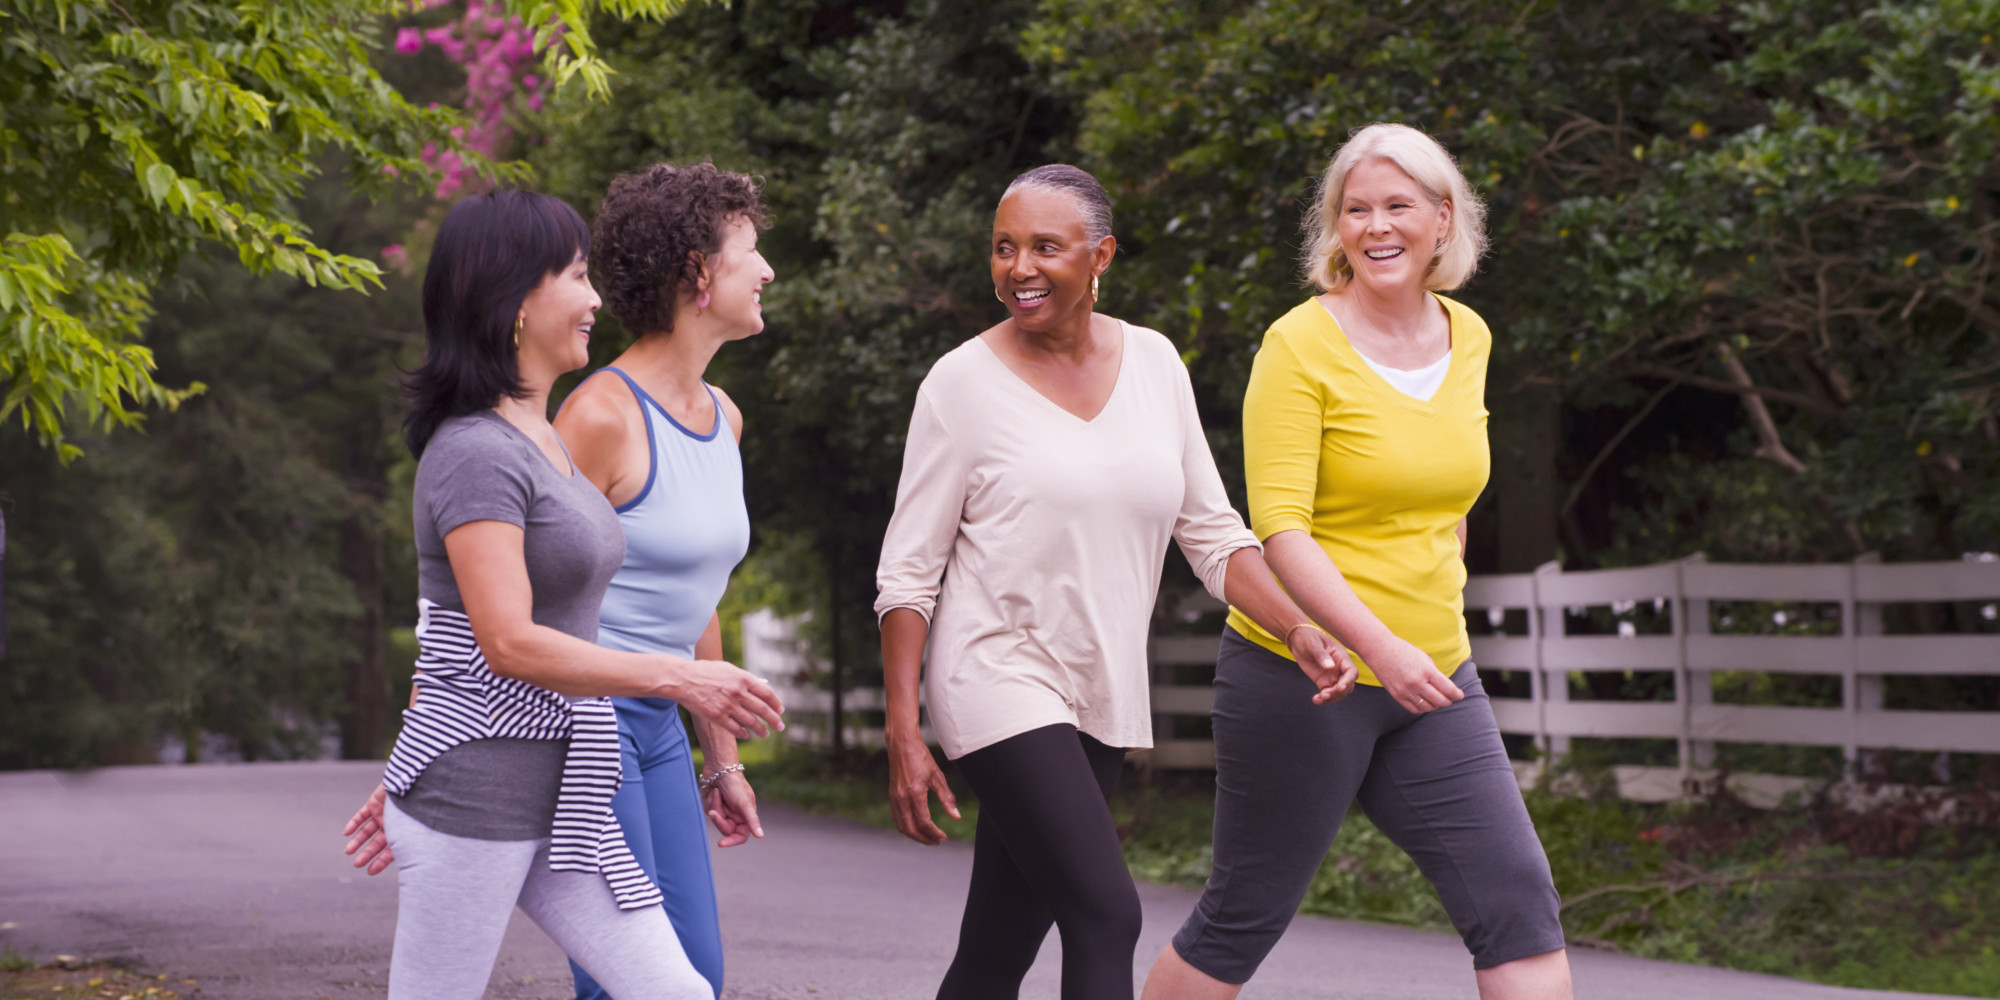 Sirona therapy Westchester blog post about self care. Image of older women walking for health.